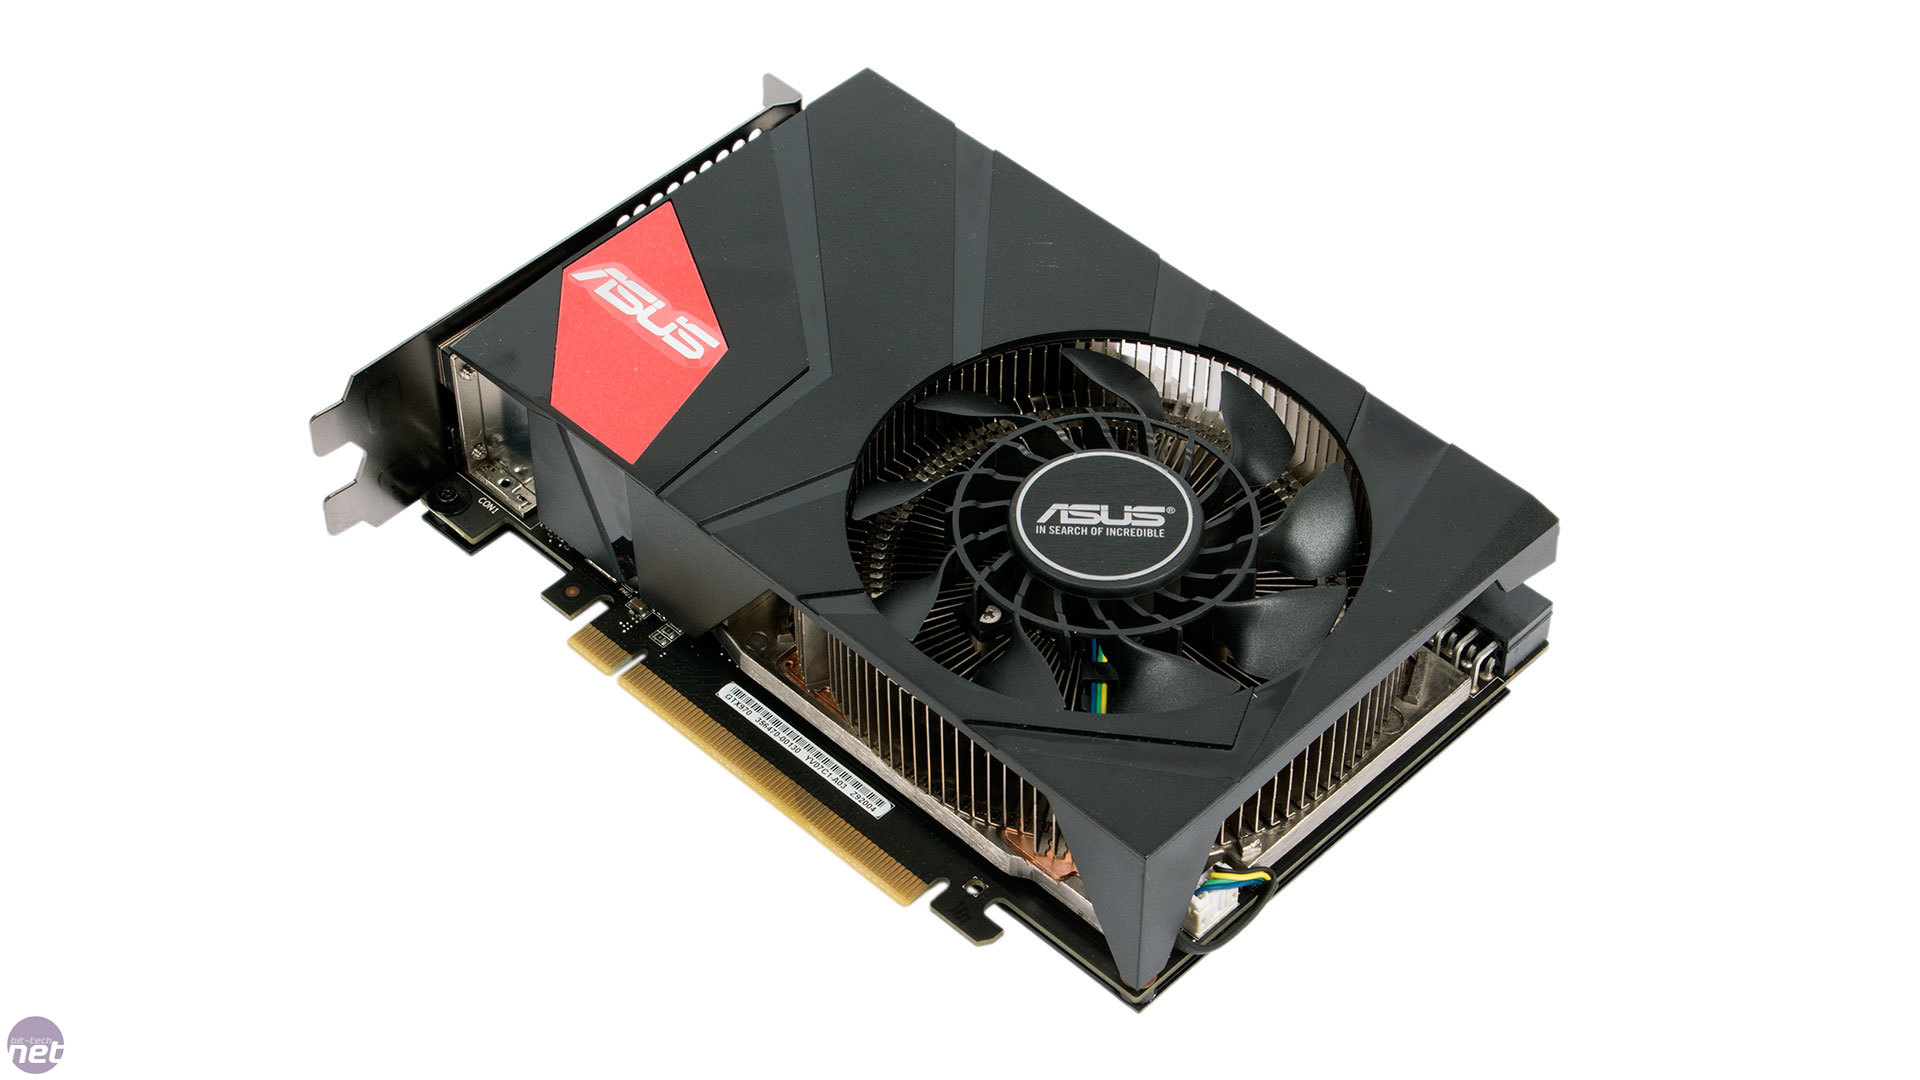 Asus GeForce GTX 970 DirectCU Mini Review | bit-tech.net